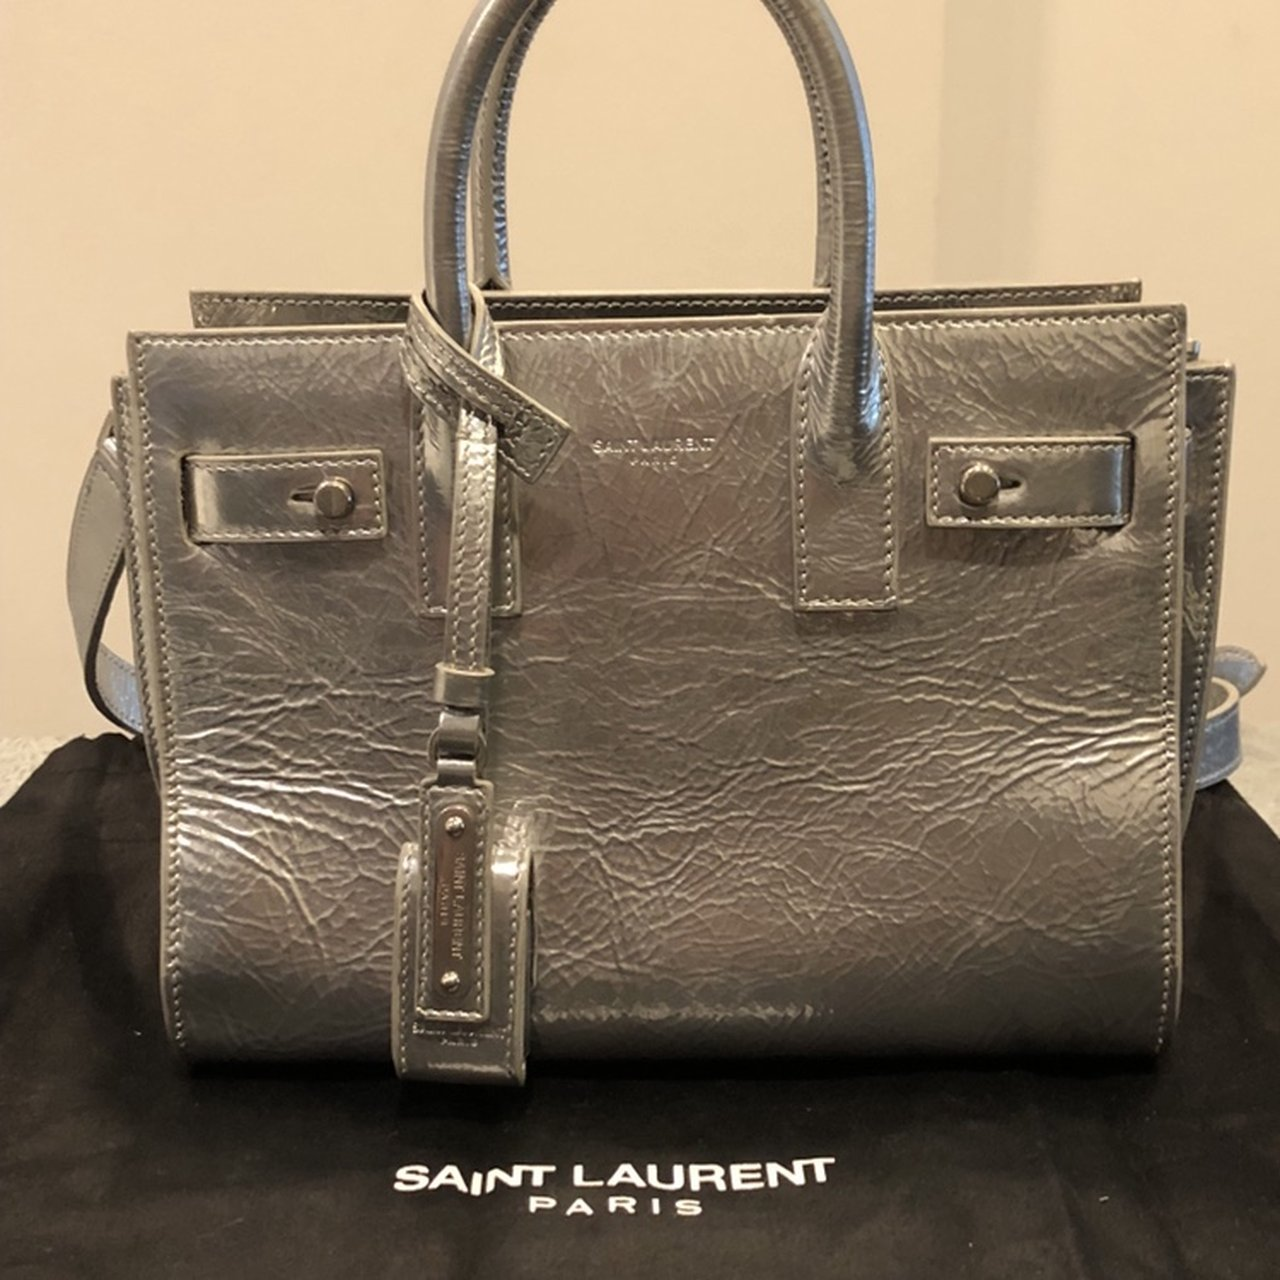 125fa08baa21 YSL YVES SAINT LAURENT CABAS LARGE TOTE BAG 🌟designer side - Depop